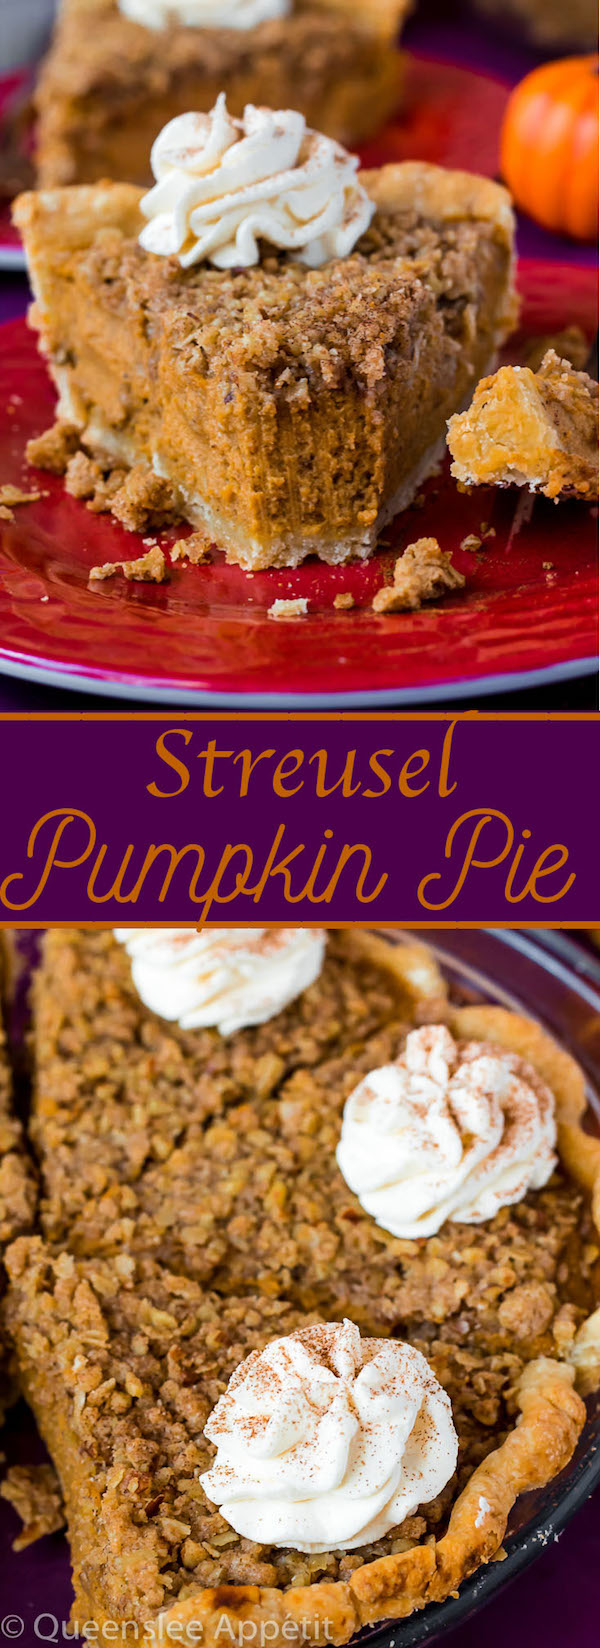 Introducing my new obsession: Streusel Pumpkin Pie! Smooth, rich and flavourful pumpkin filling sits inside a buttery, flakey homemade pie crust and is topped with a crunchy pecan streusel topping. This is the perfect dessert to serve for Thanksgiving!